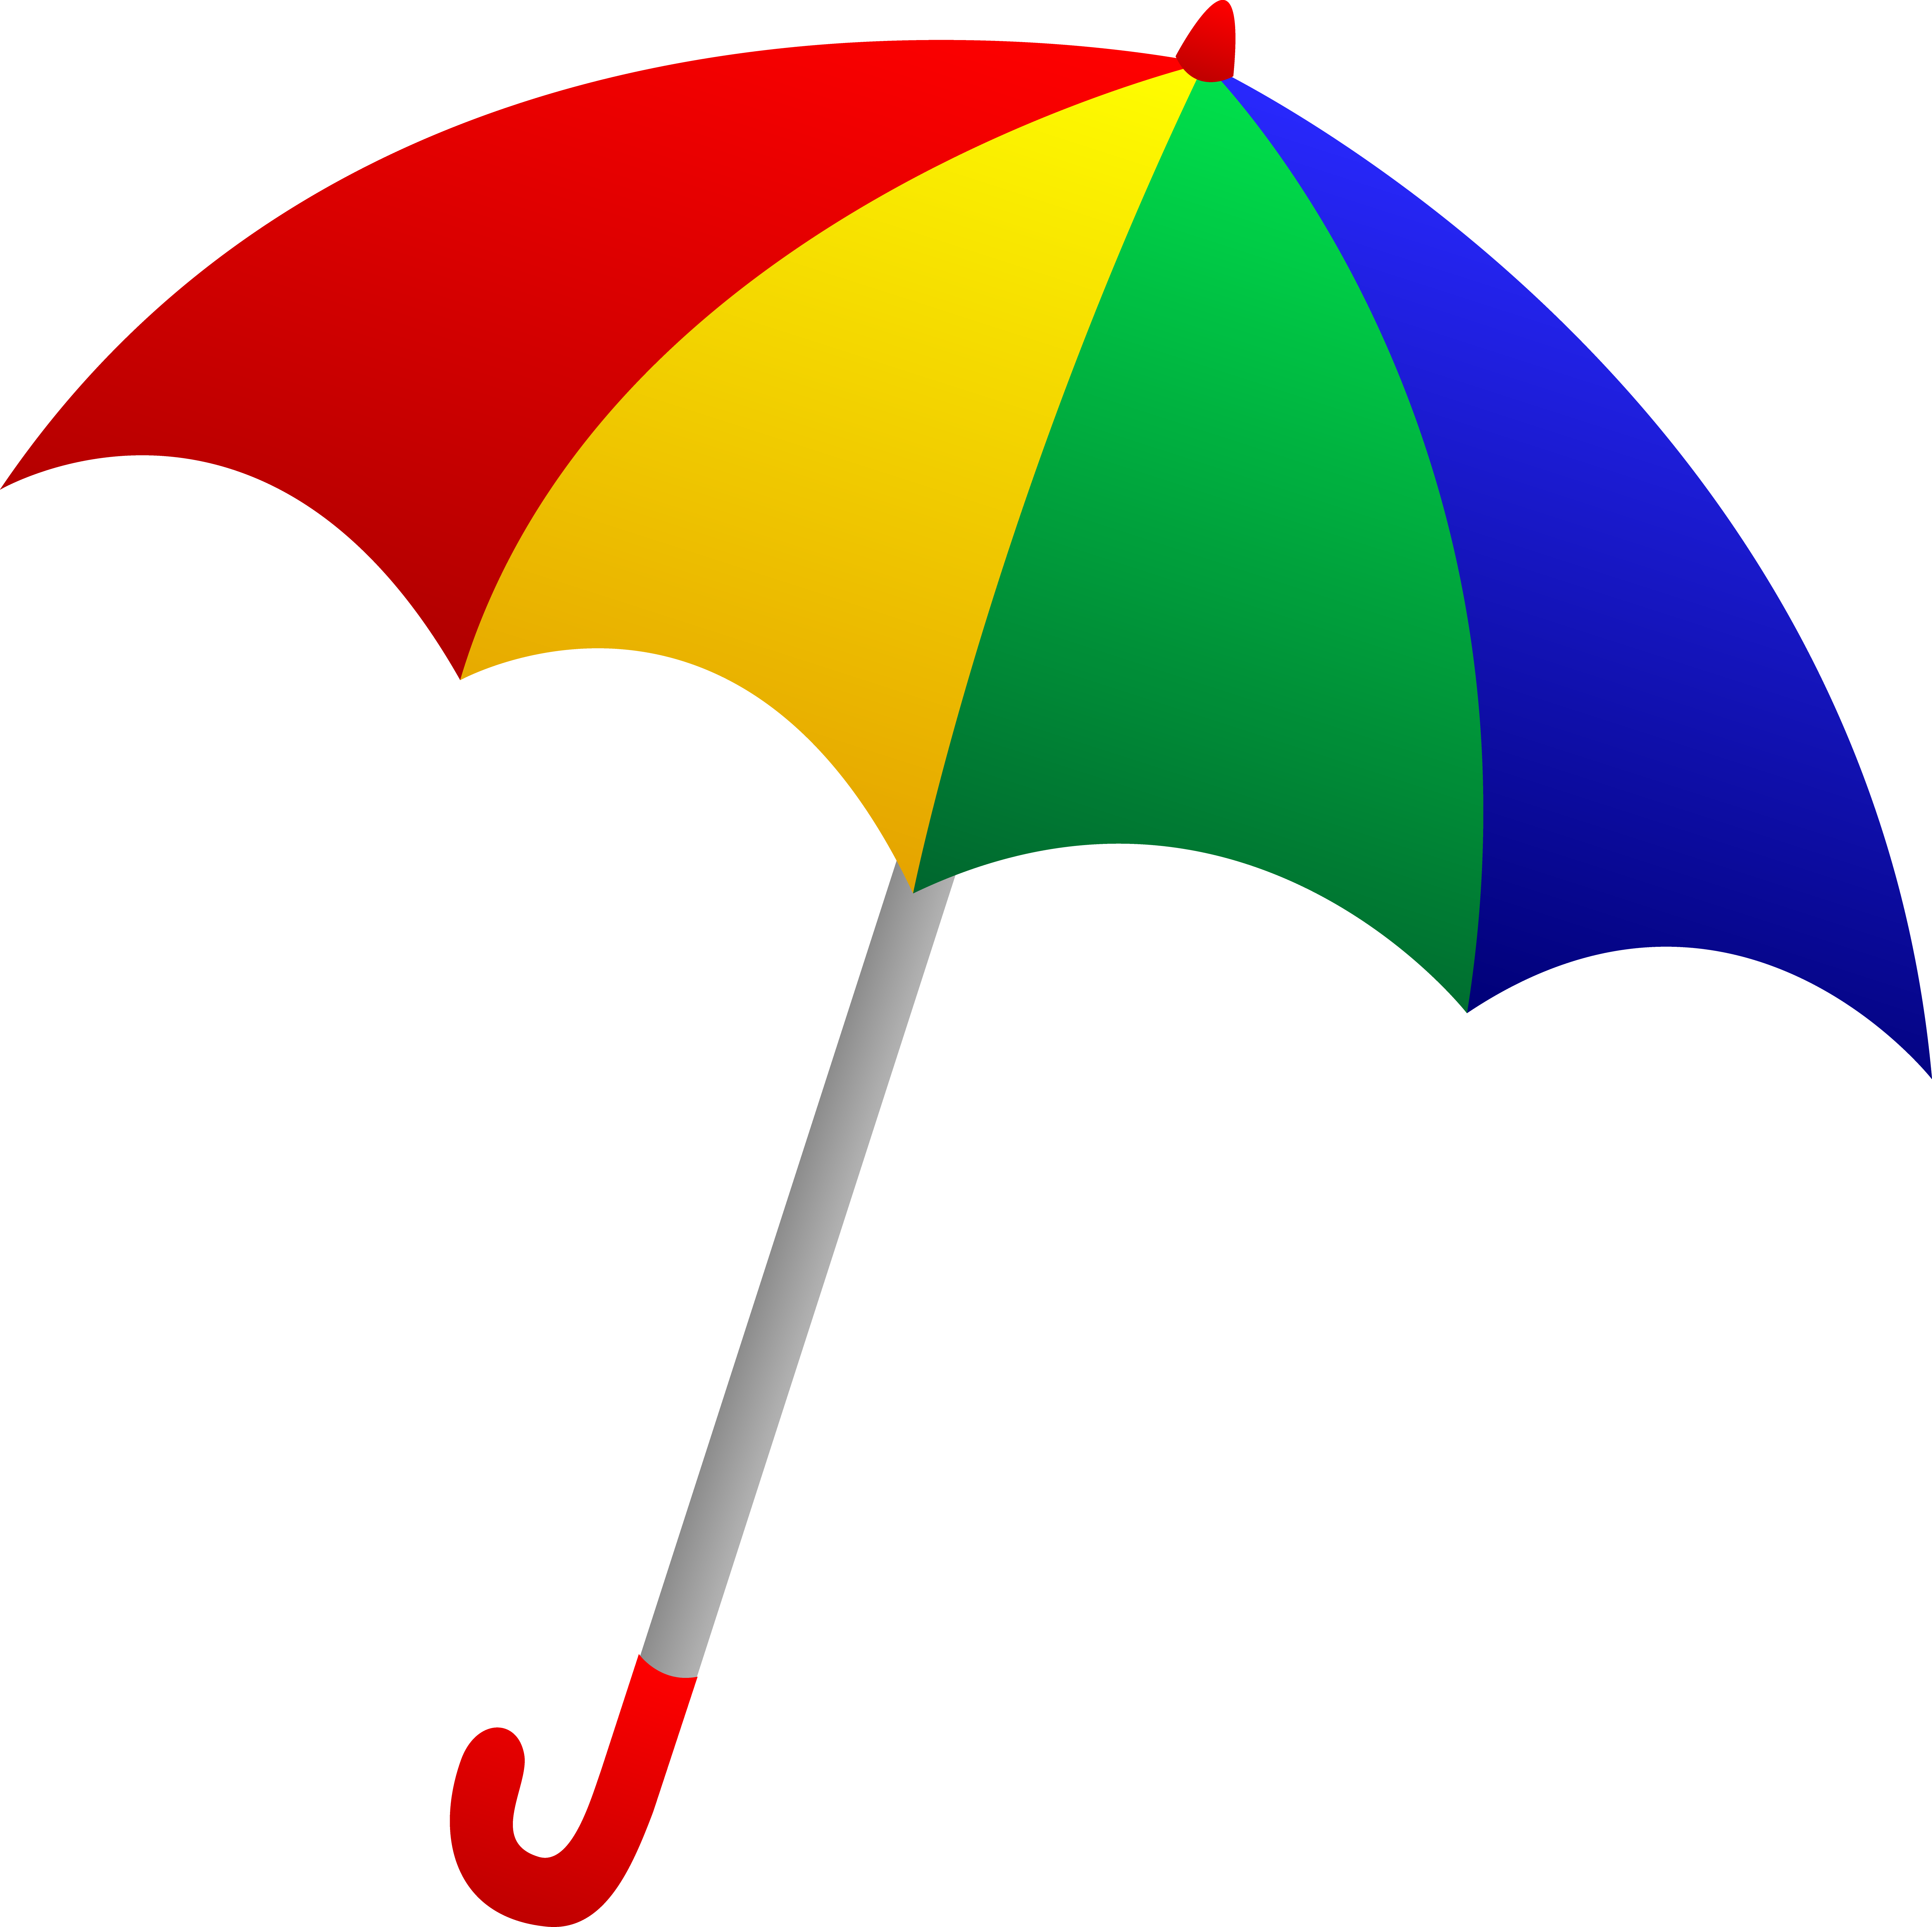 Umbrella Clip art.